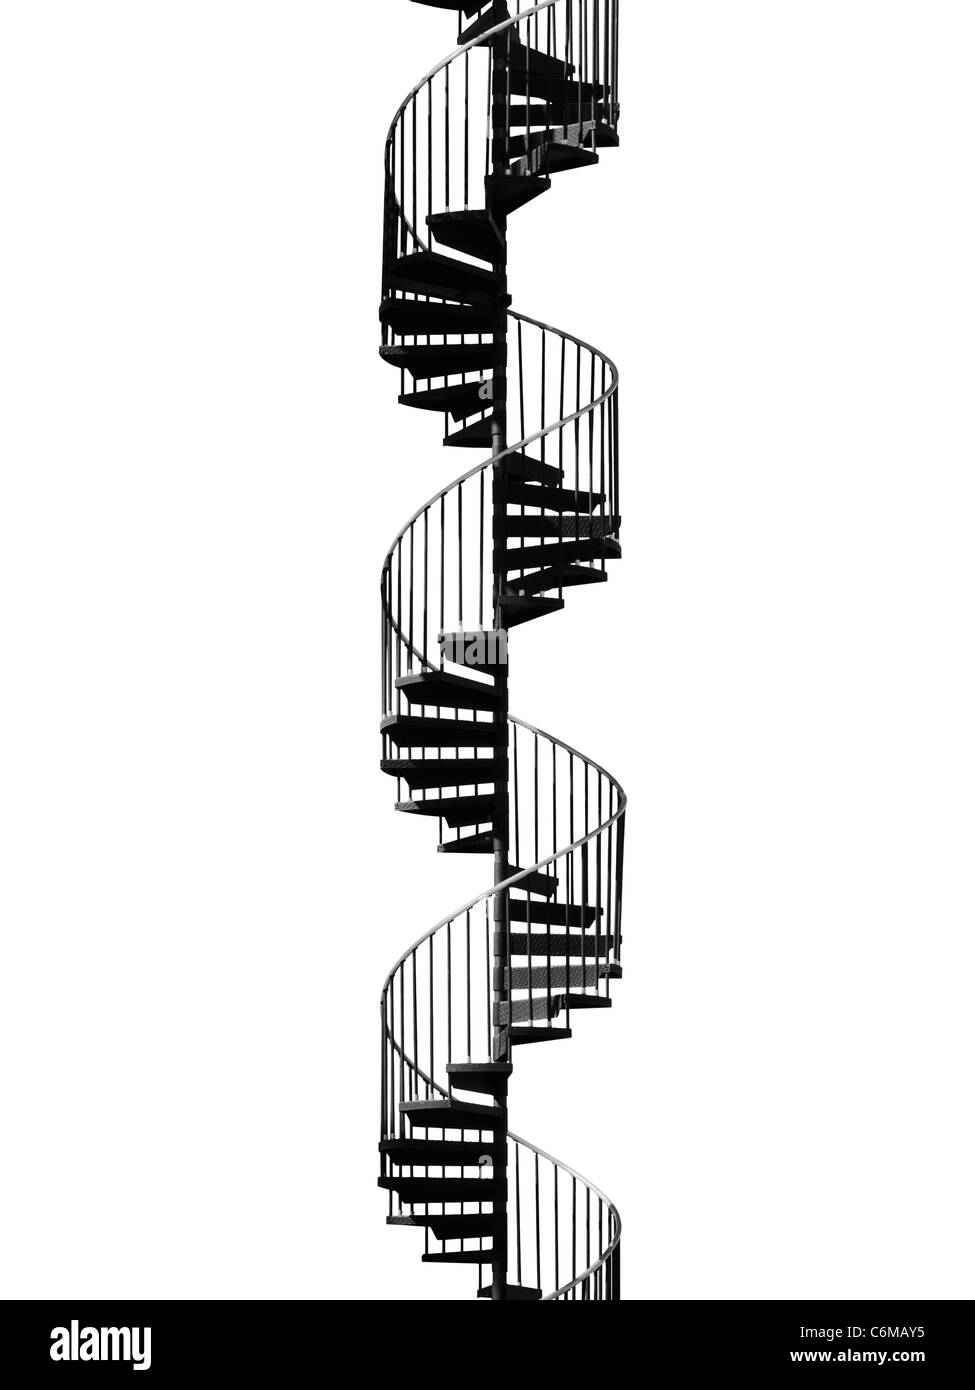 Front Elevation Of Spiral Staircase : Metal spiral staircase shot against white background stock